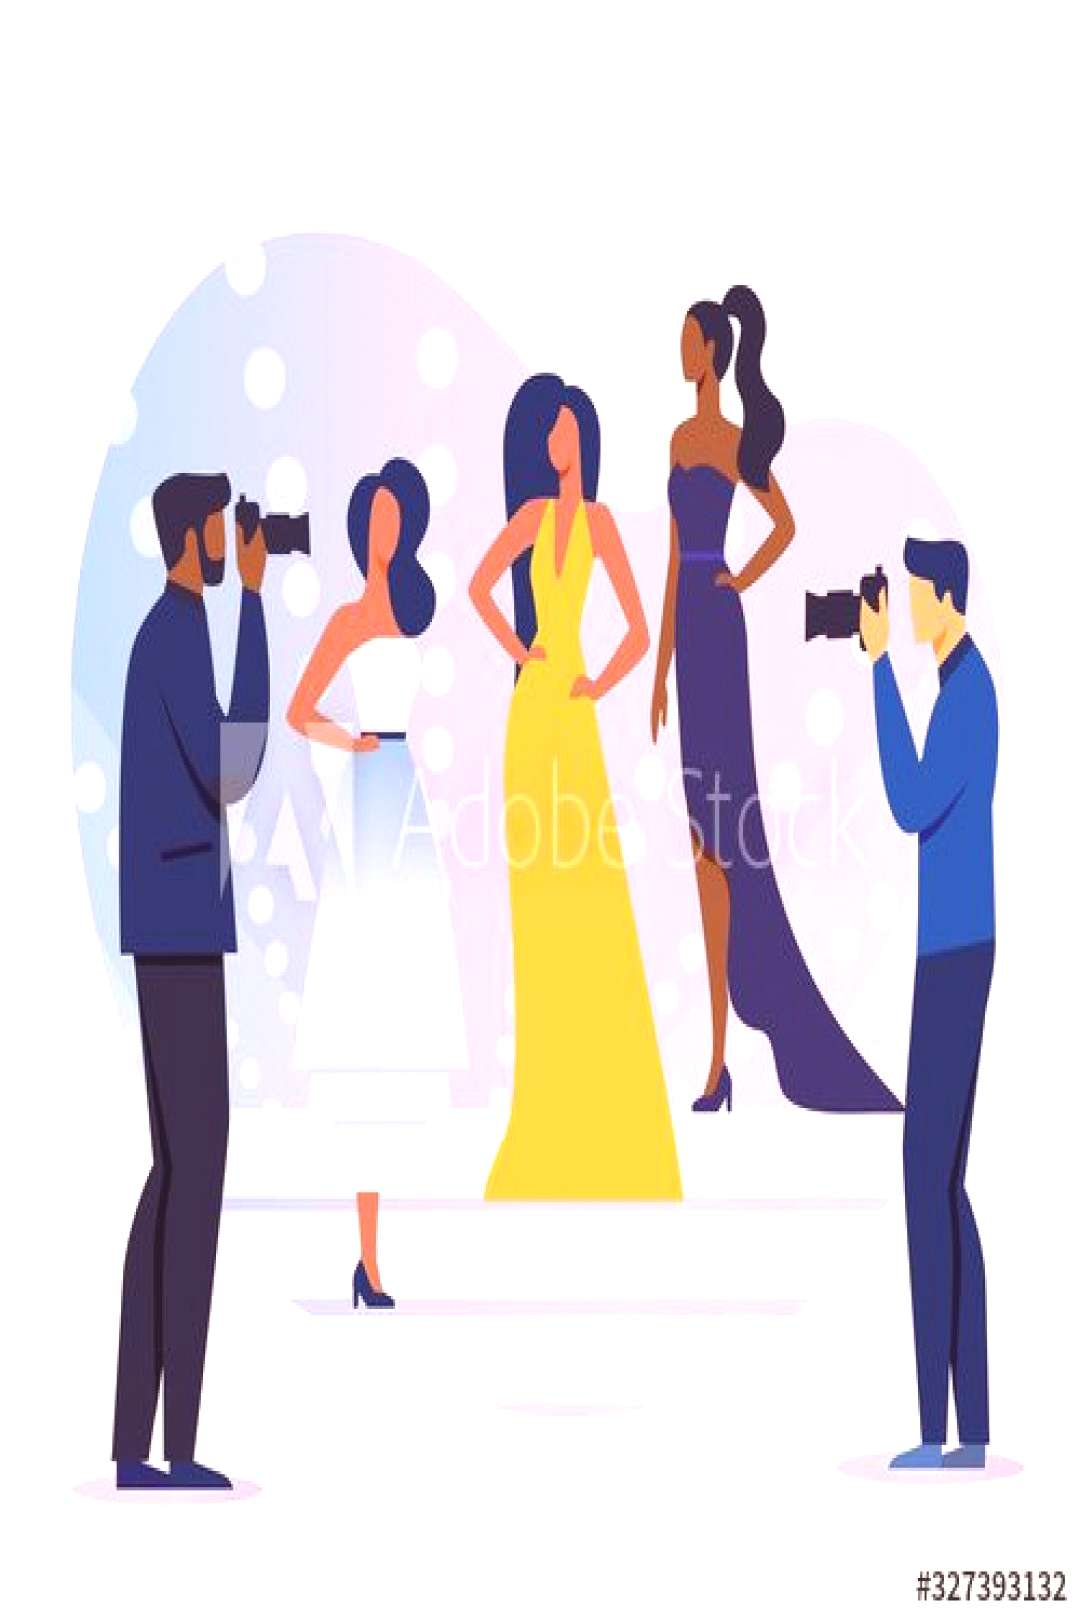 Professional Photoshoot Flat Vector Illustration. Young Models and Photographers Cartoon Characters